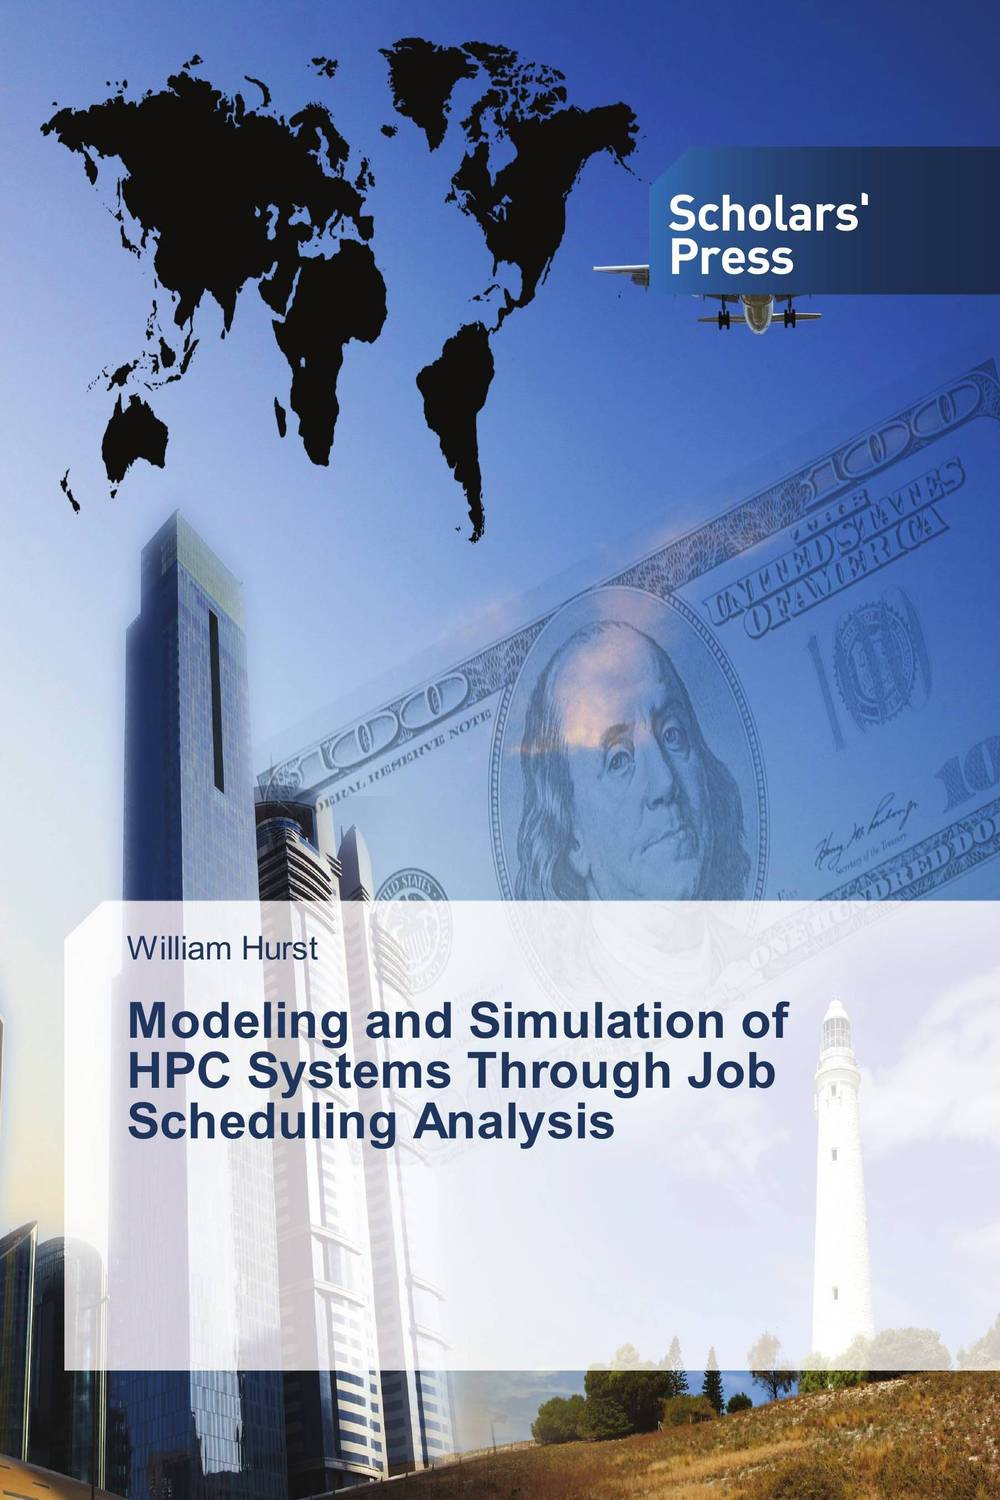 Modeling and Simulation of HPC Systems Through Job Scheduling Analysis